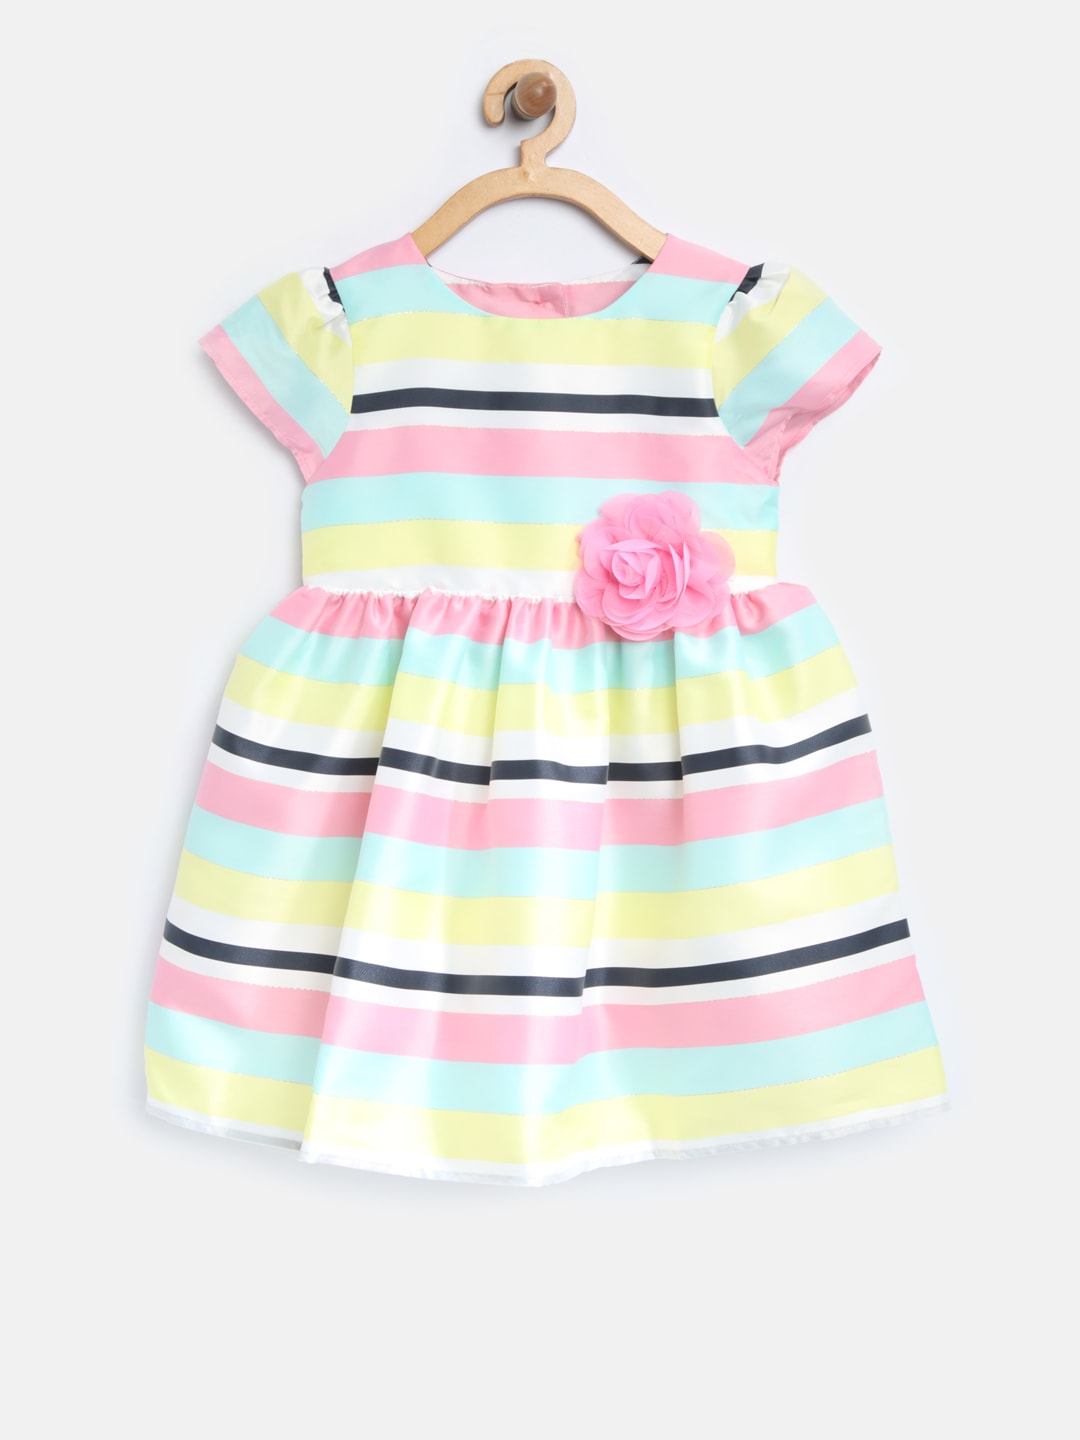 29780b61a32 Mothercare - Buy Kids Clothing Online in India from Mothercare